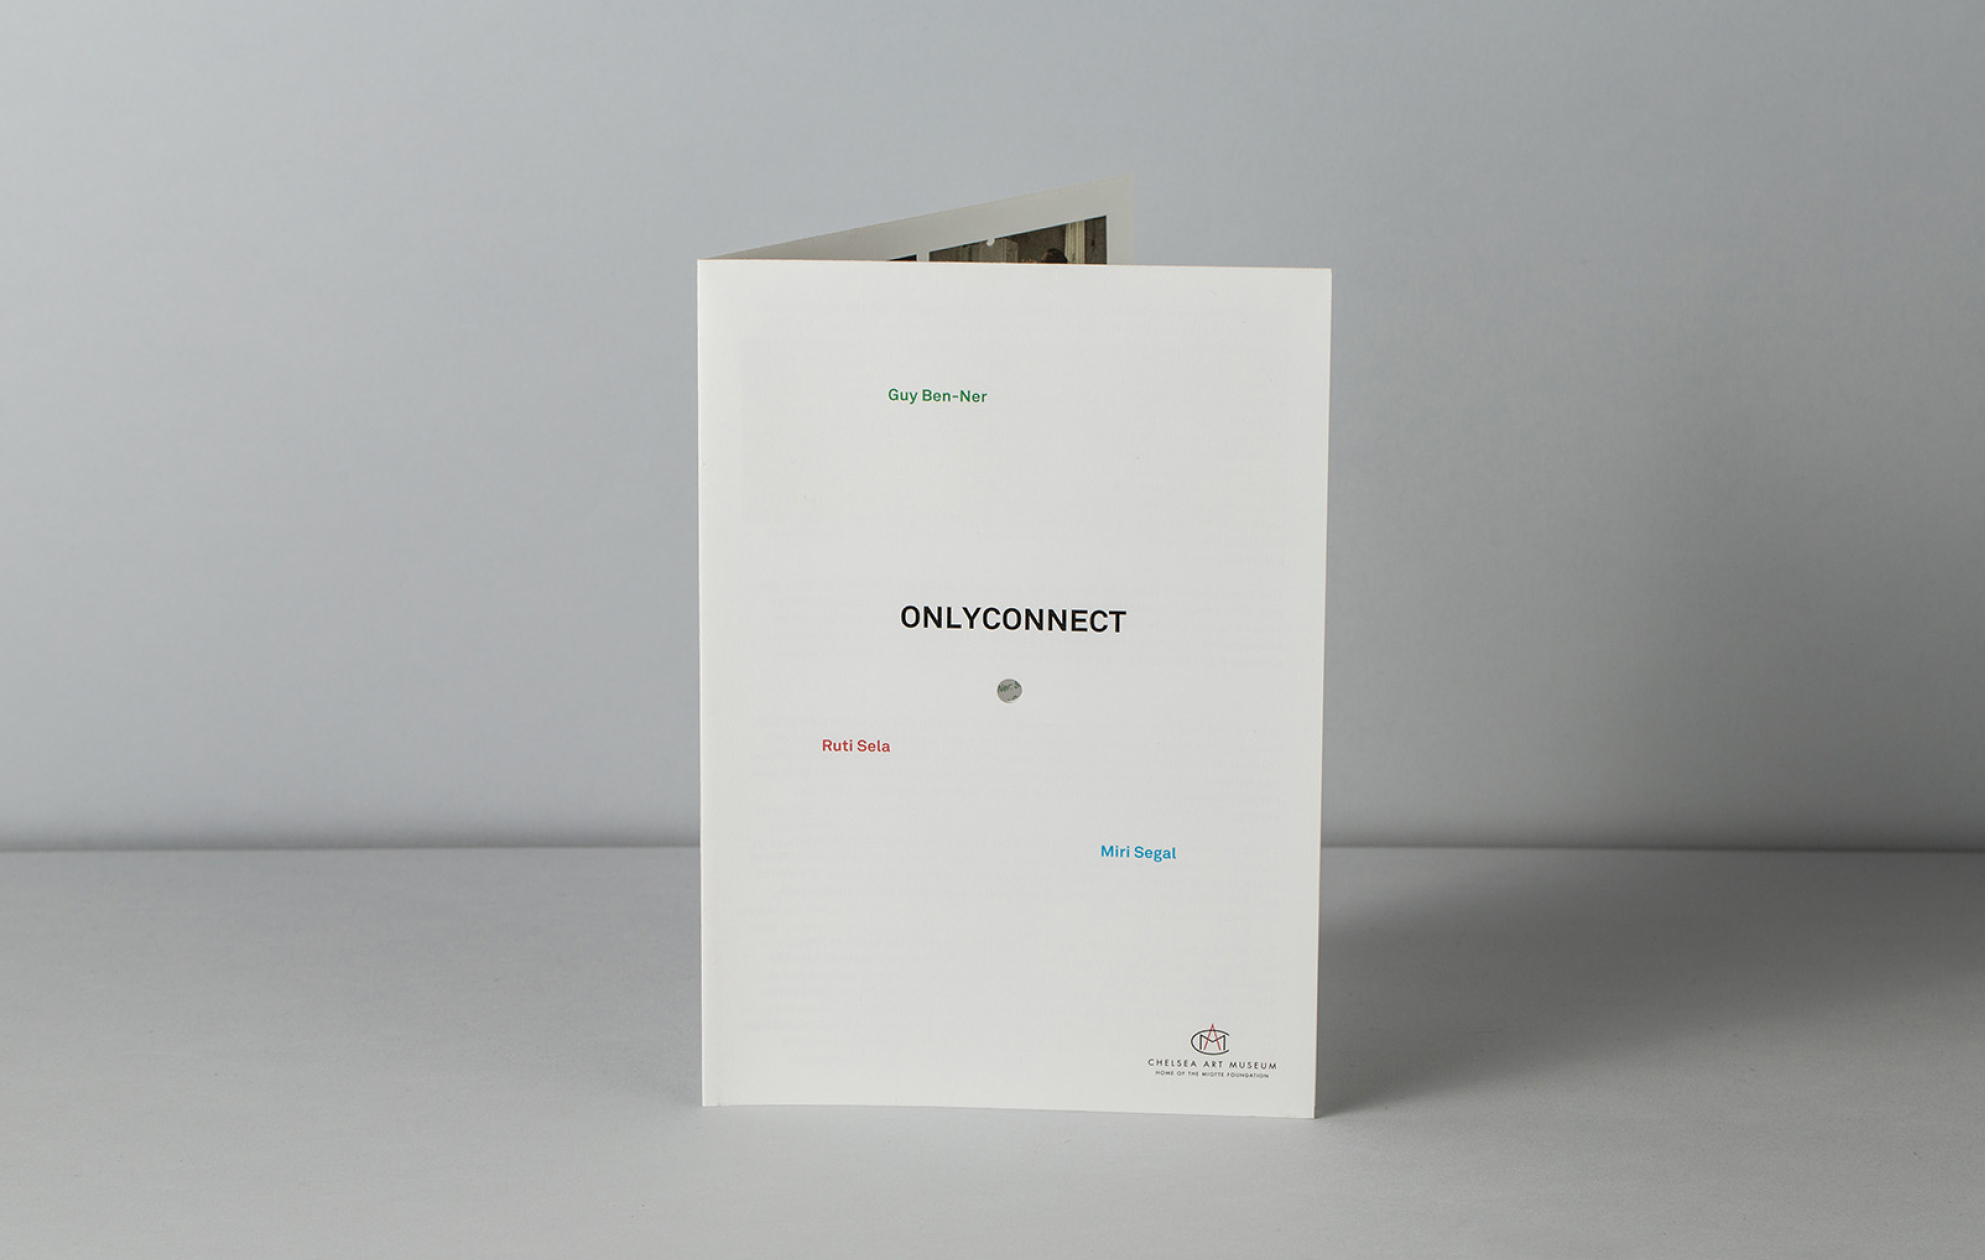 ONLYCONNECT